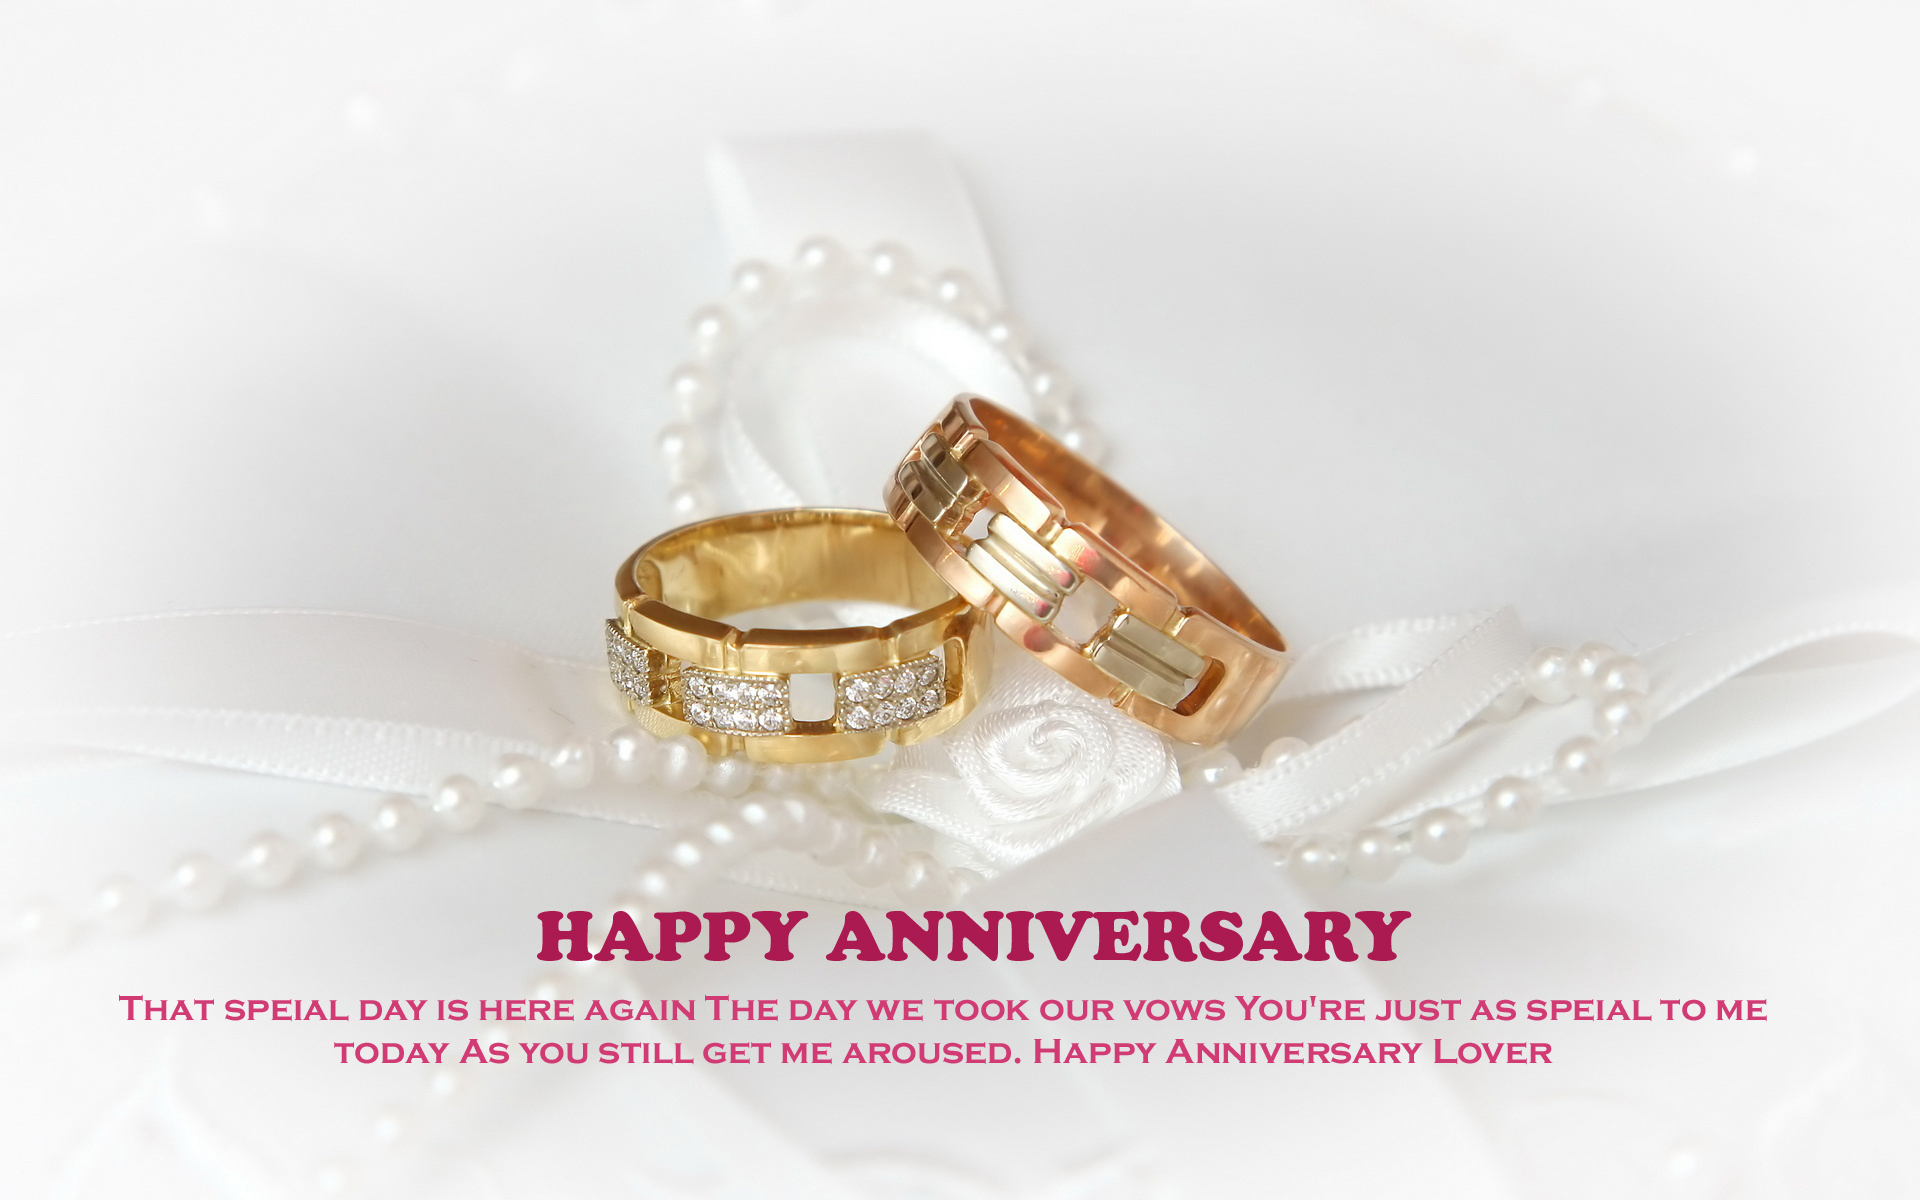 Love happy anniversary hd wallpaper inspiring quotes and